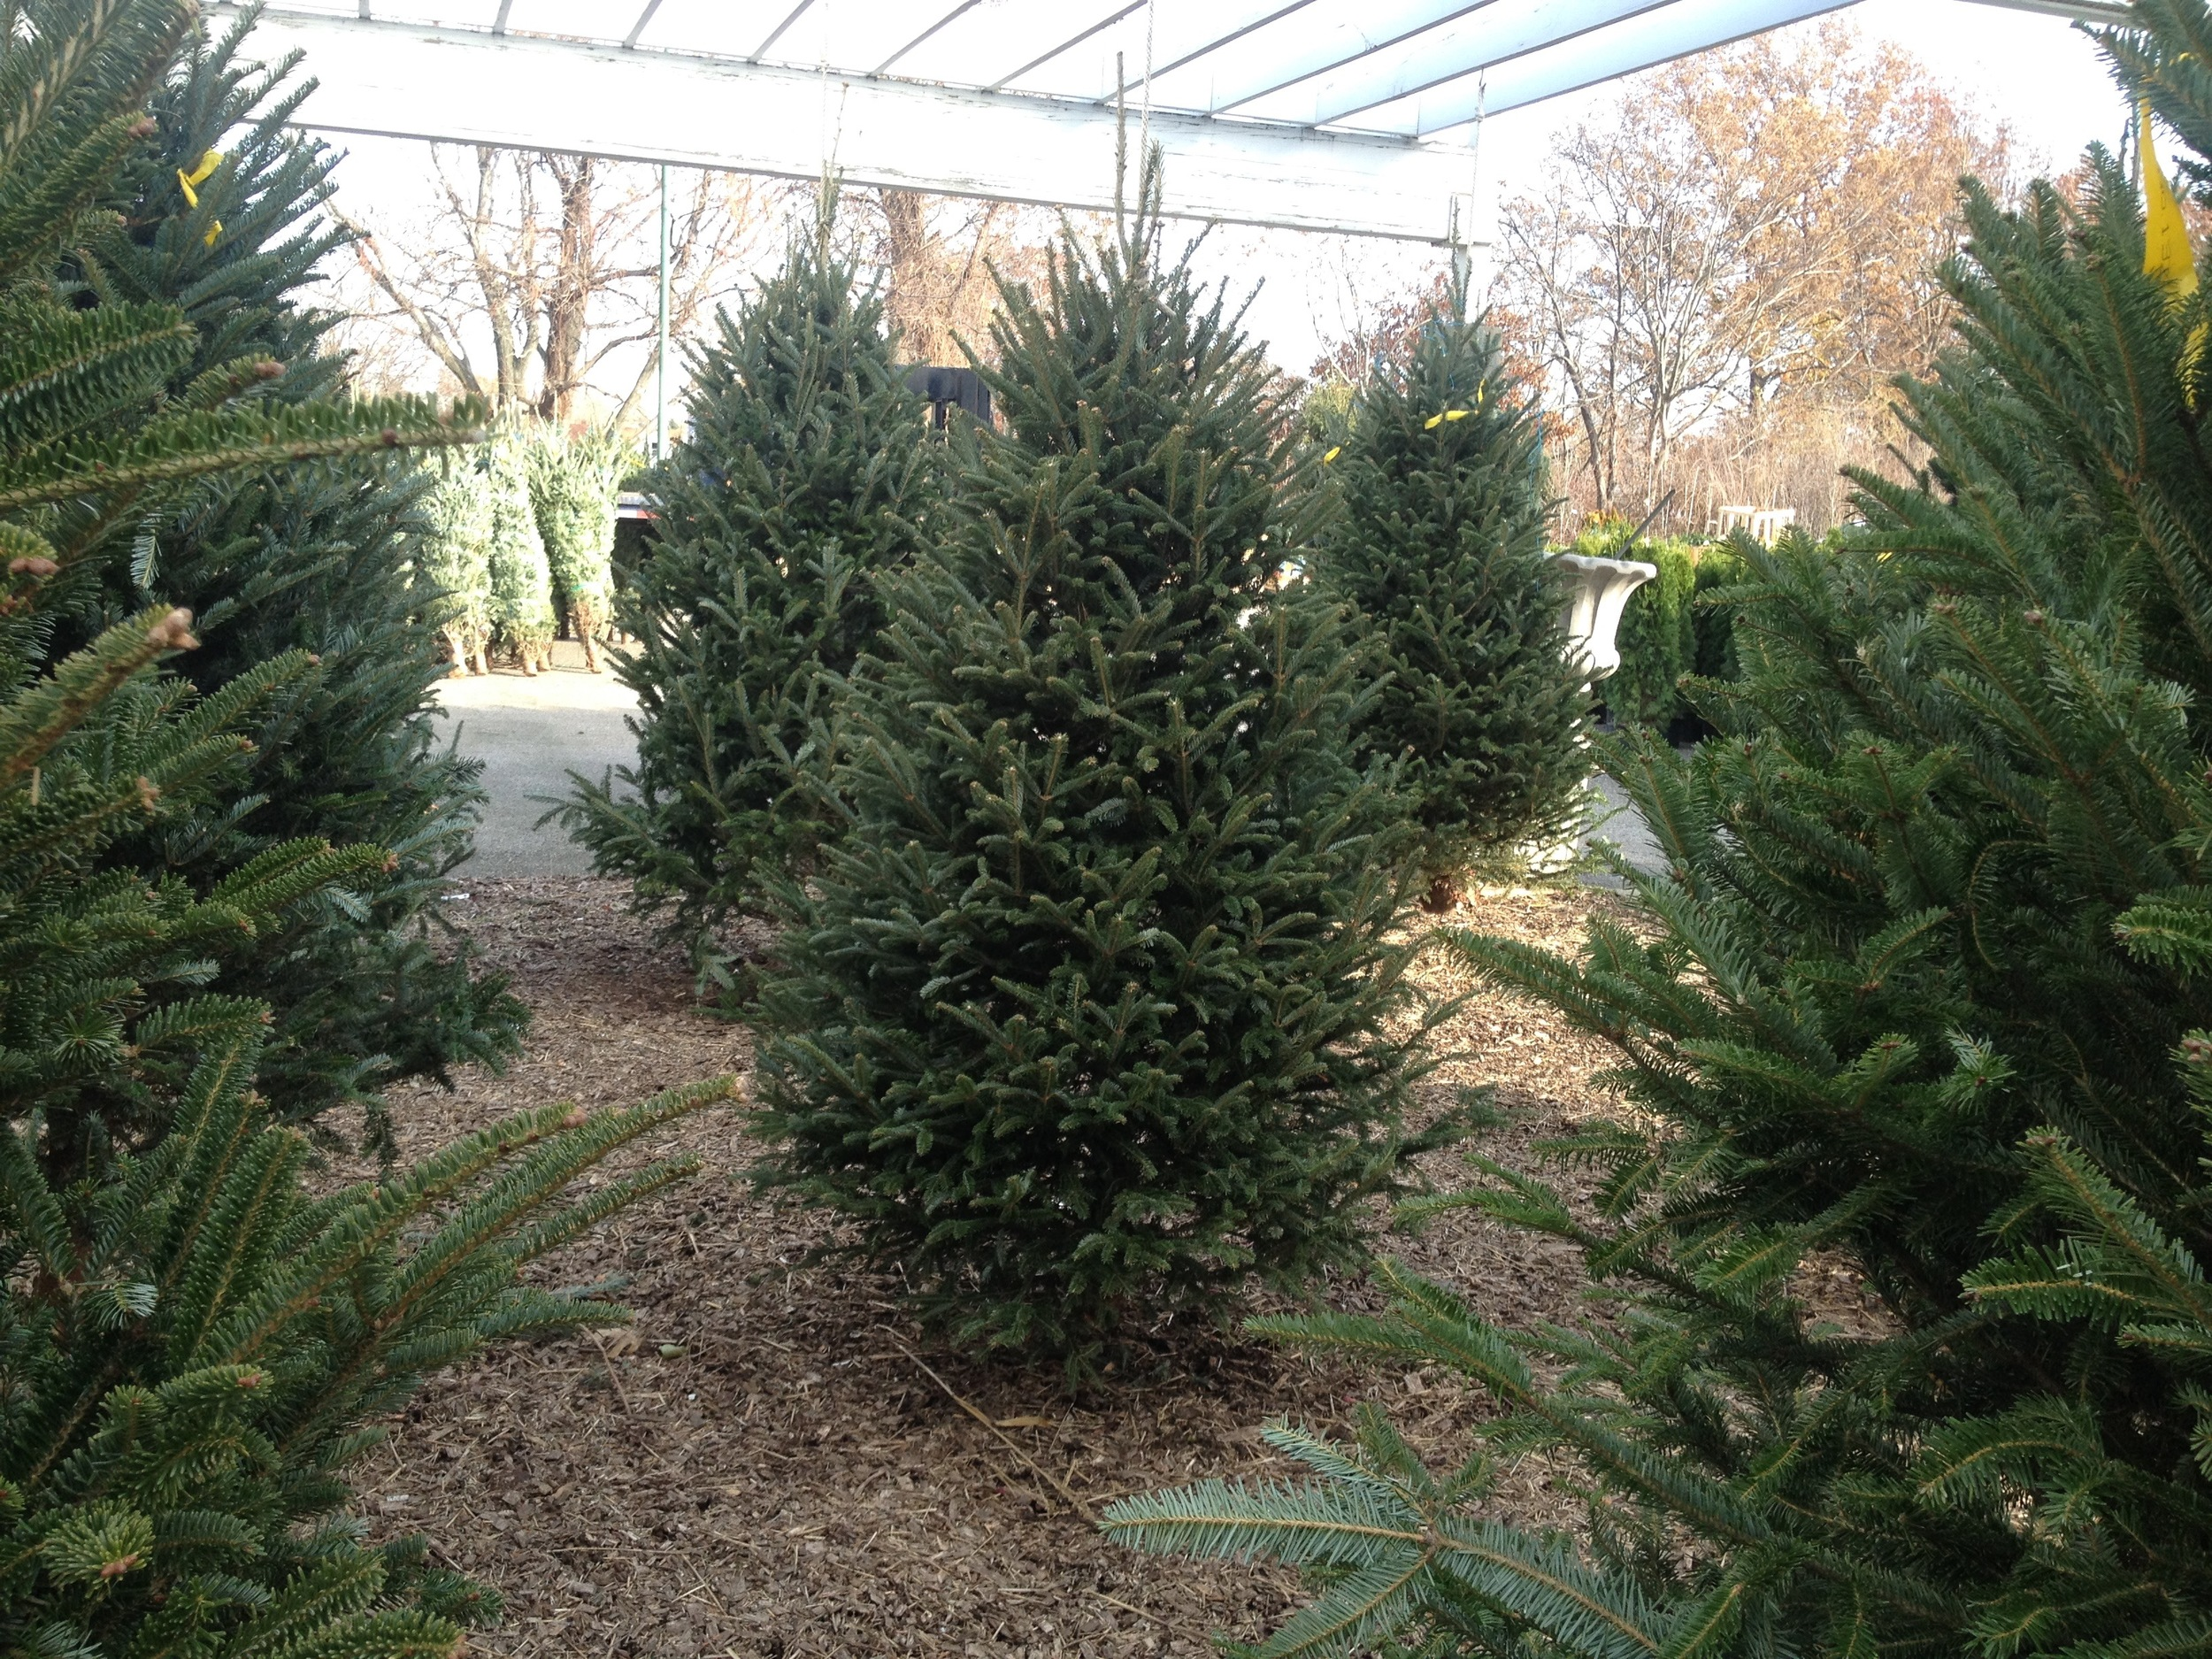 Fraser Fir - North Carolina, USA